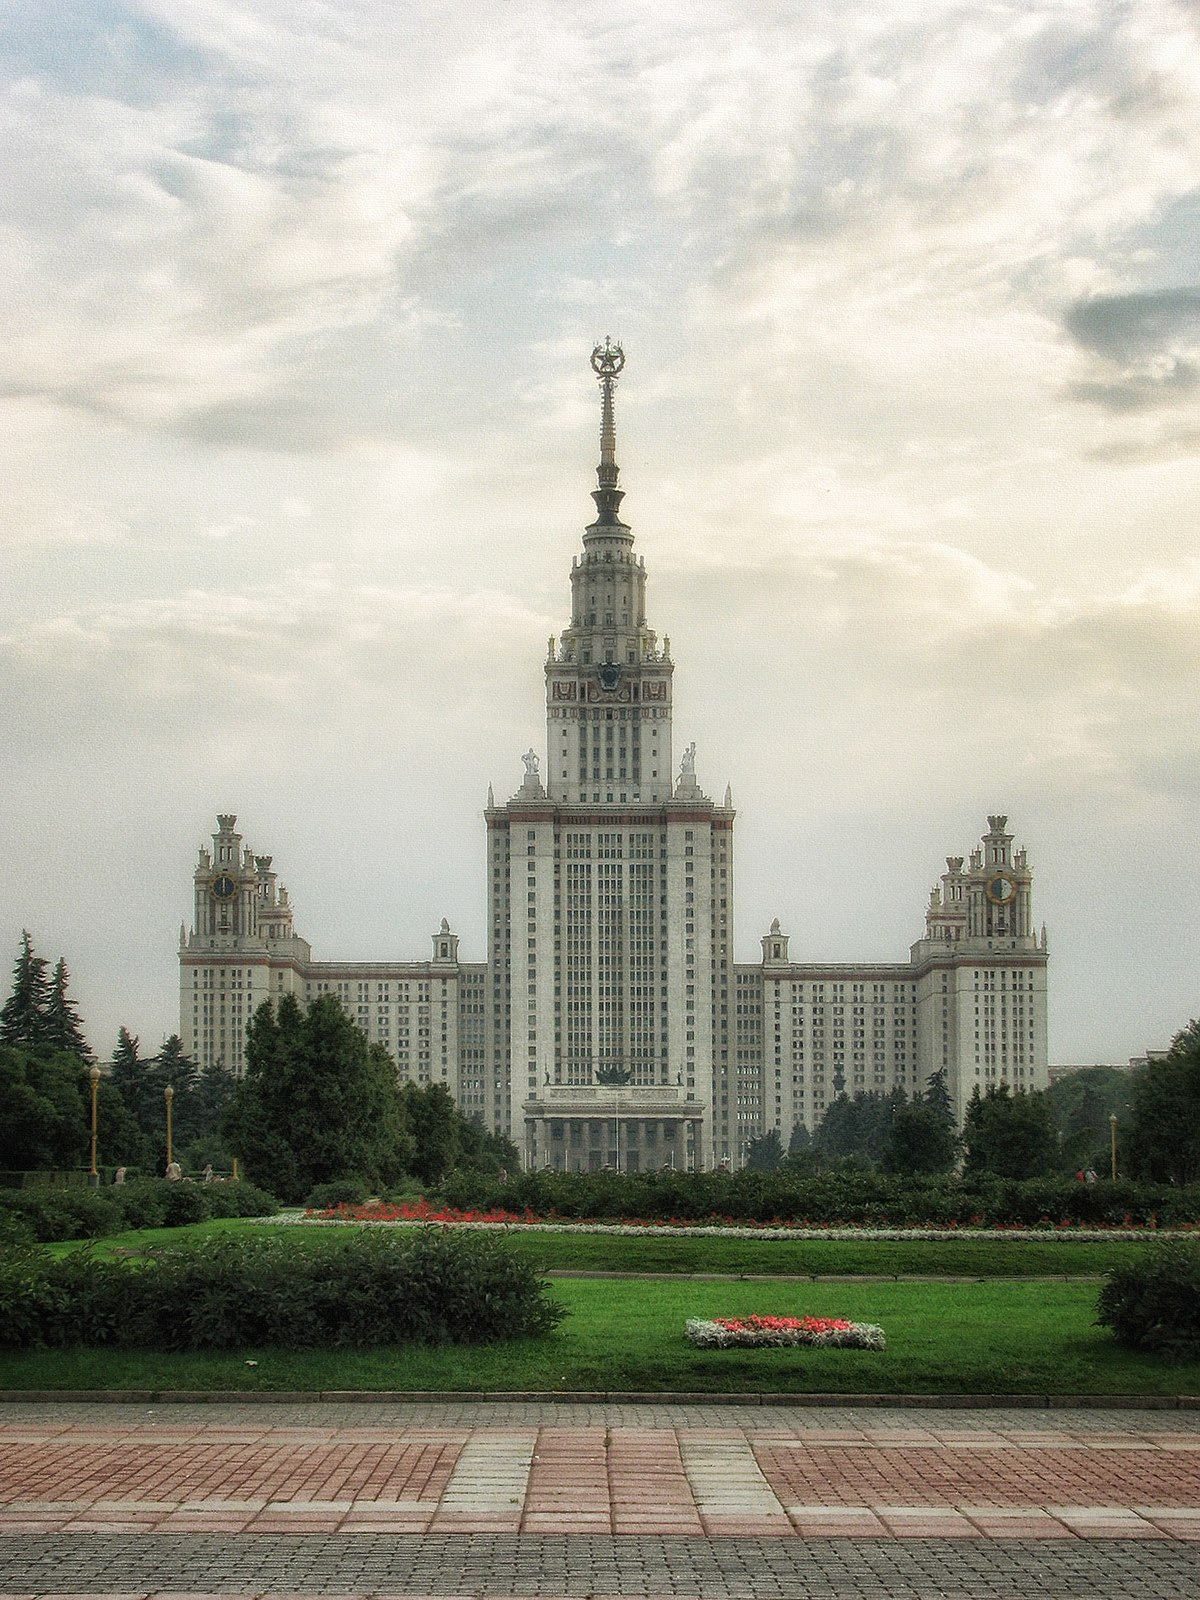 Moscow State University in the Soviet era (many photos)